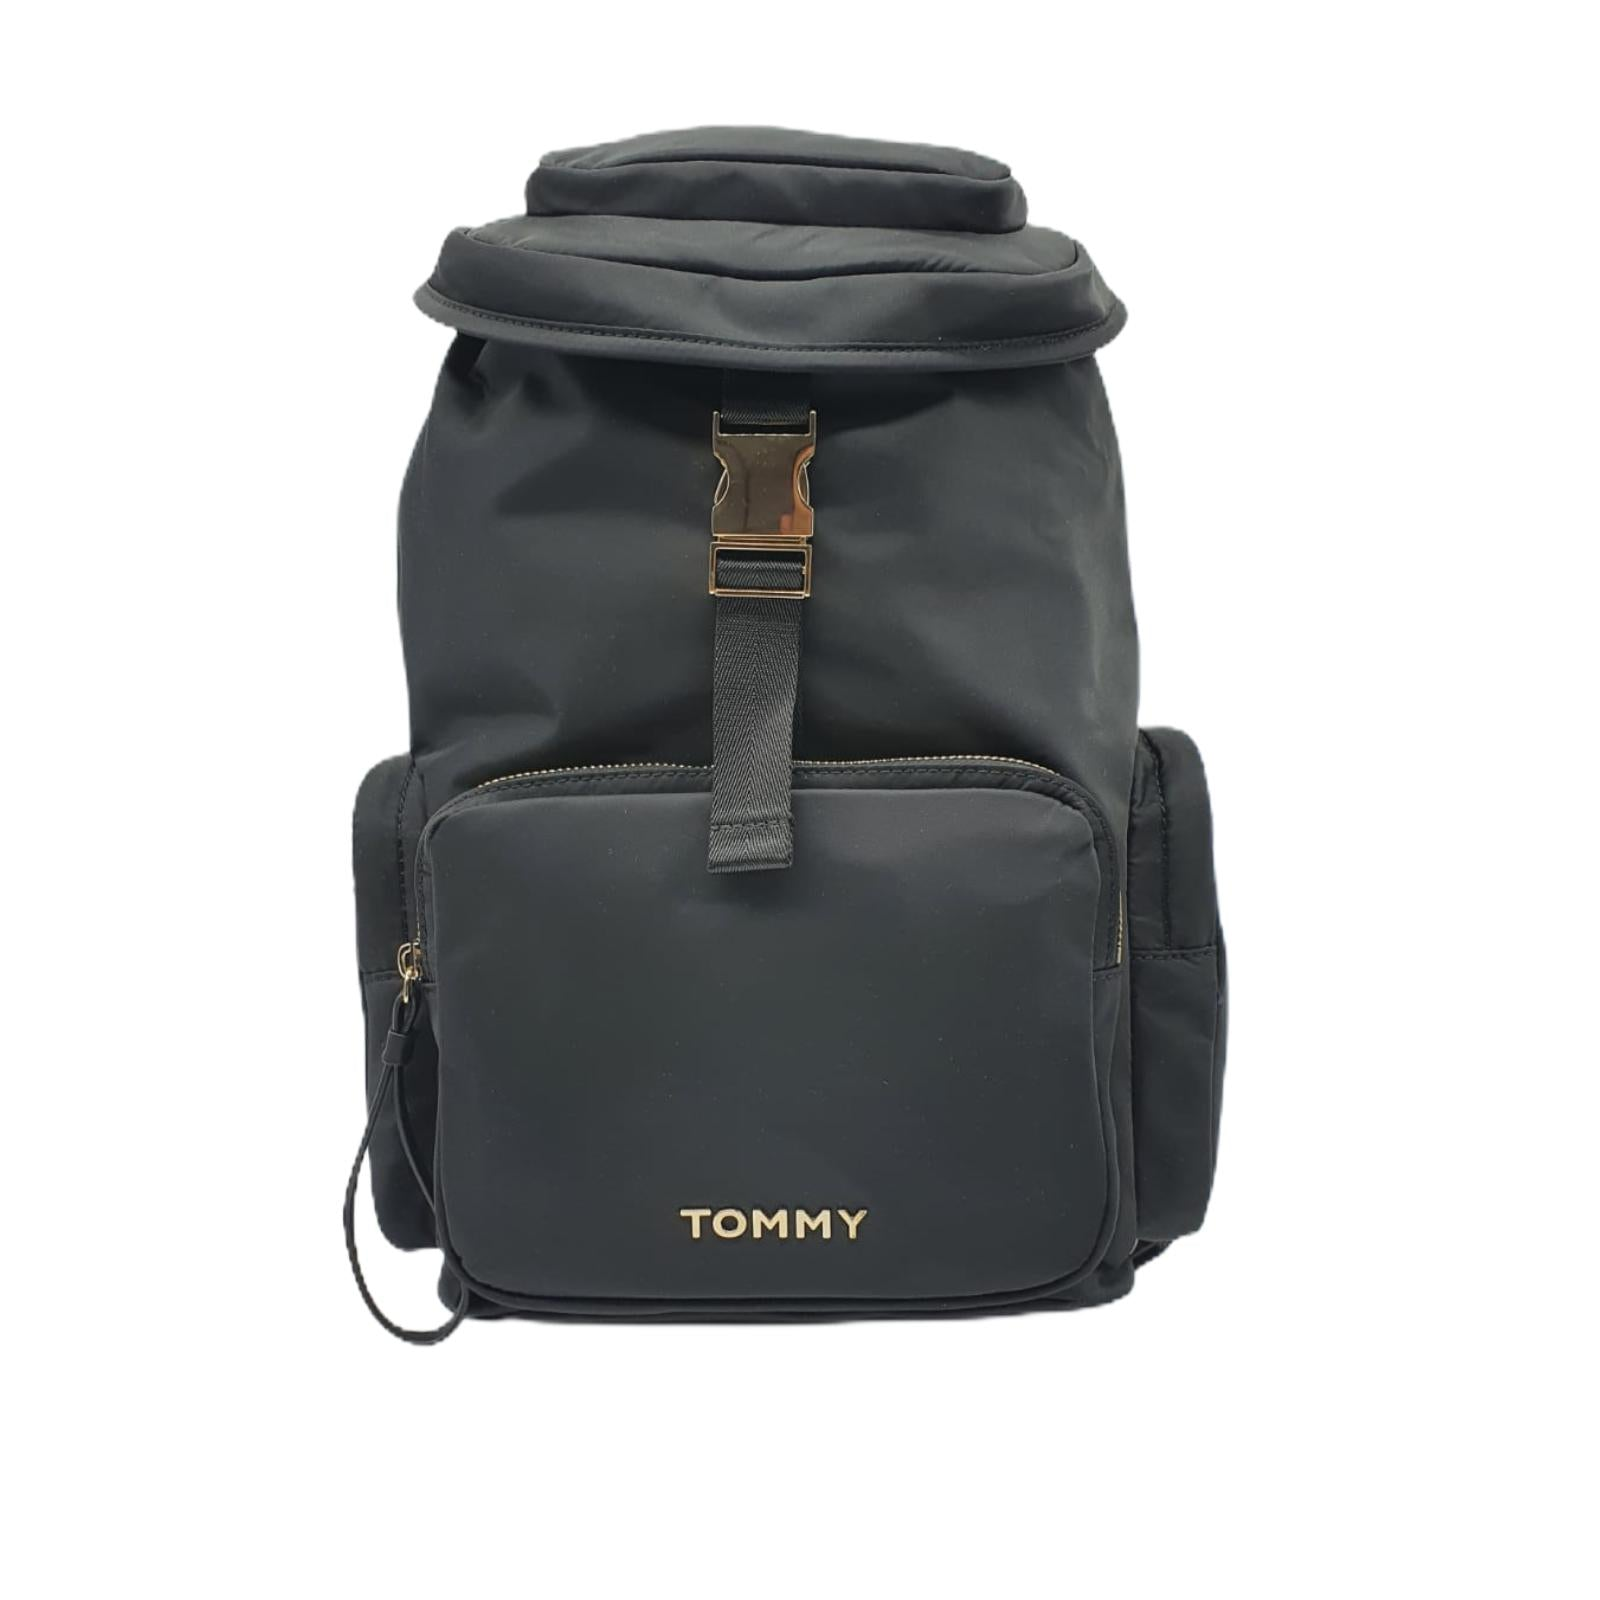 Zaino Tommy Hilfiger Nylon Backpack Textile